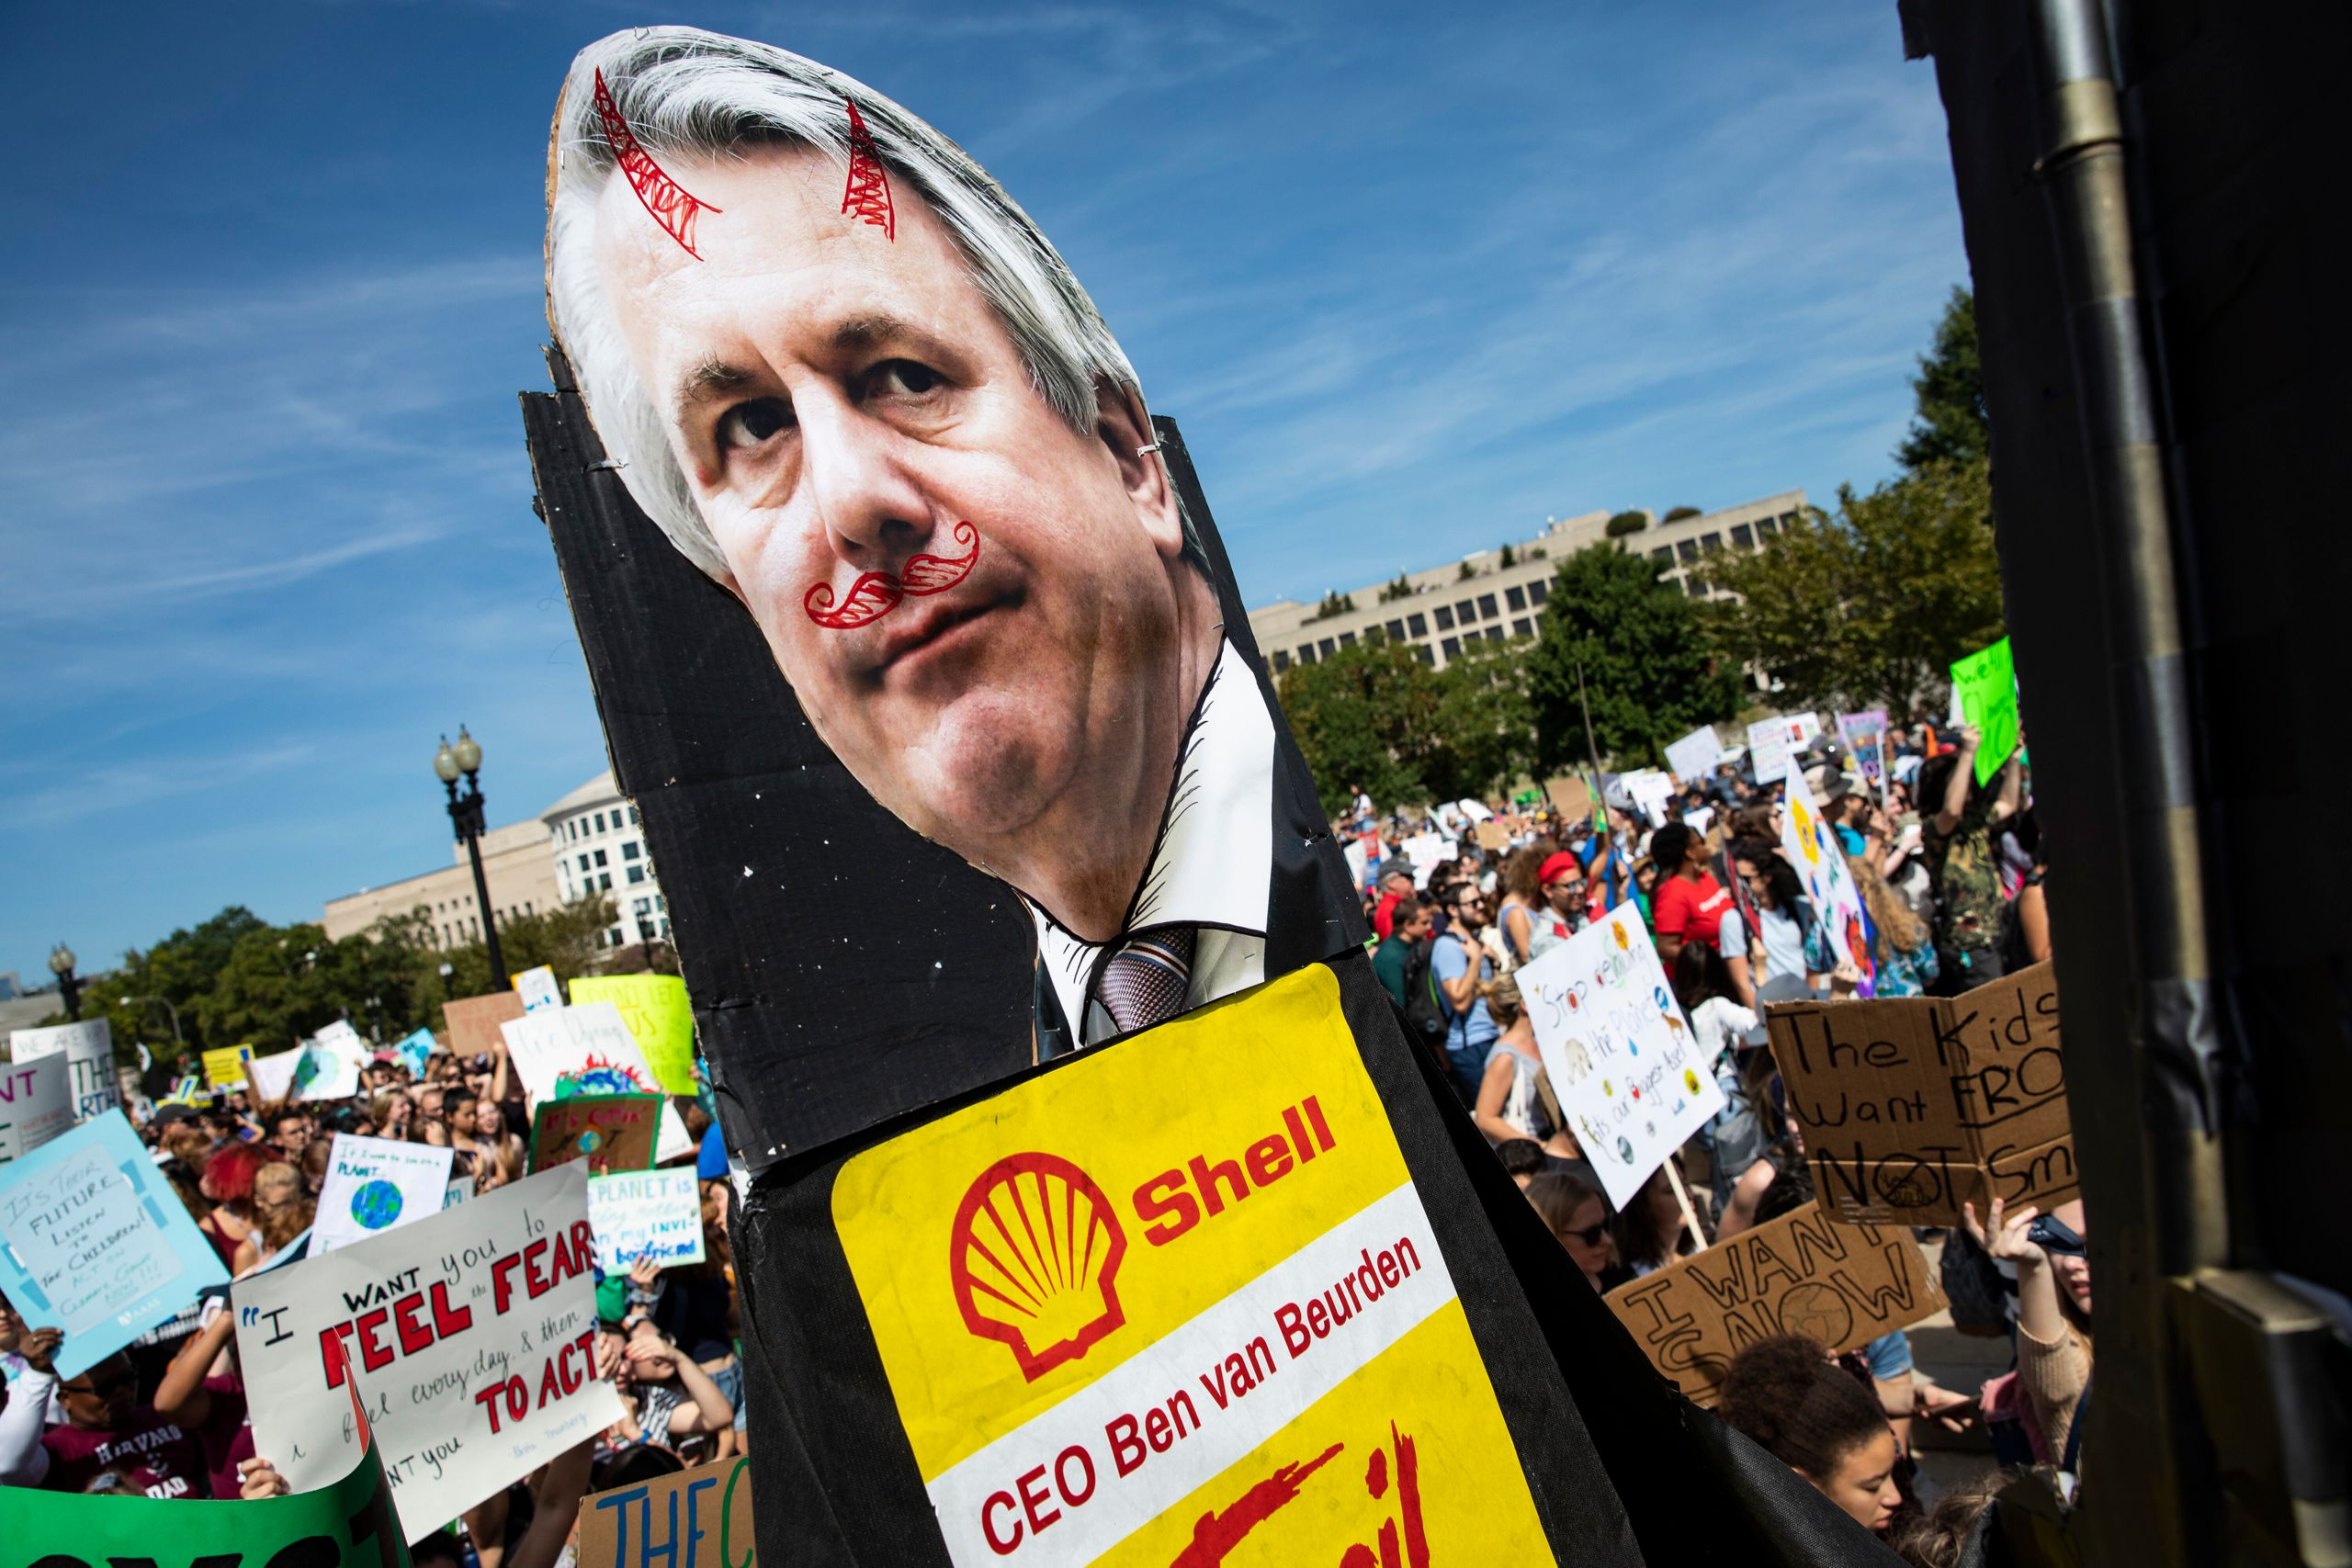 Youth carry along an effigy of Shell CEO Ben van Beurden for the Global Climate Strike protests on September 20, 2019 in Wash